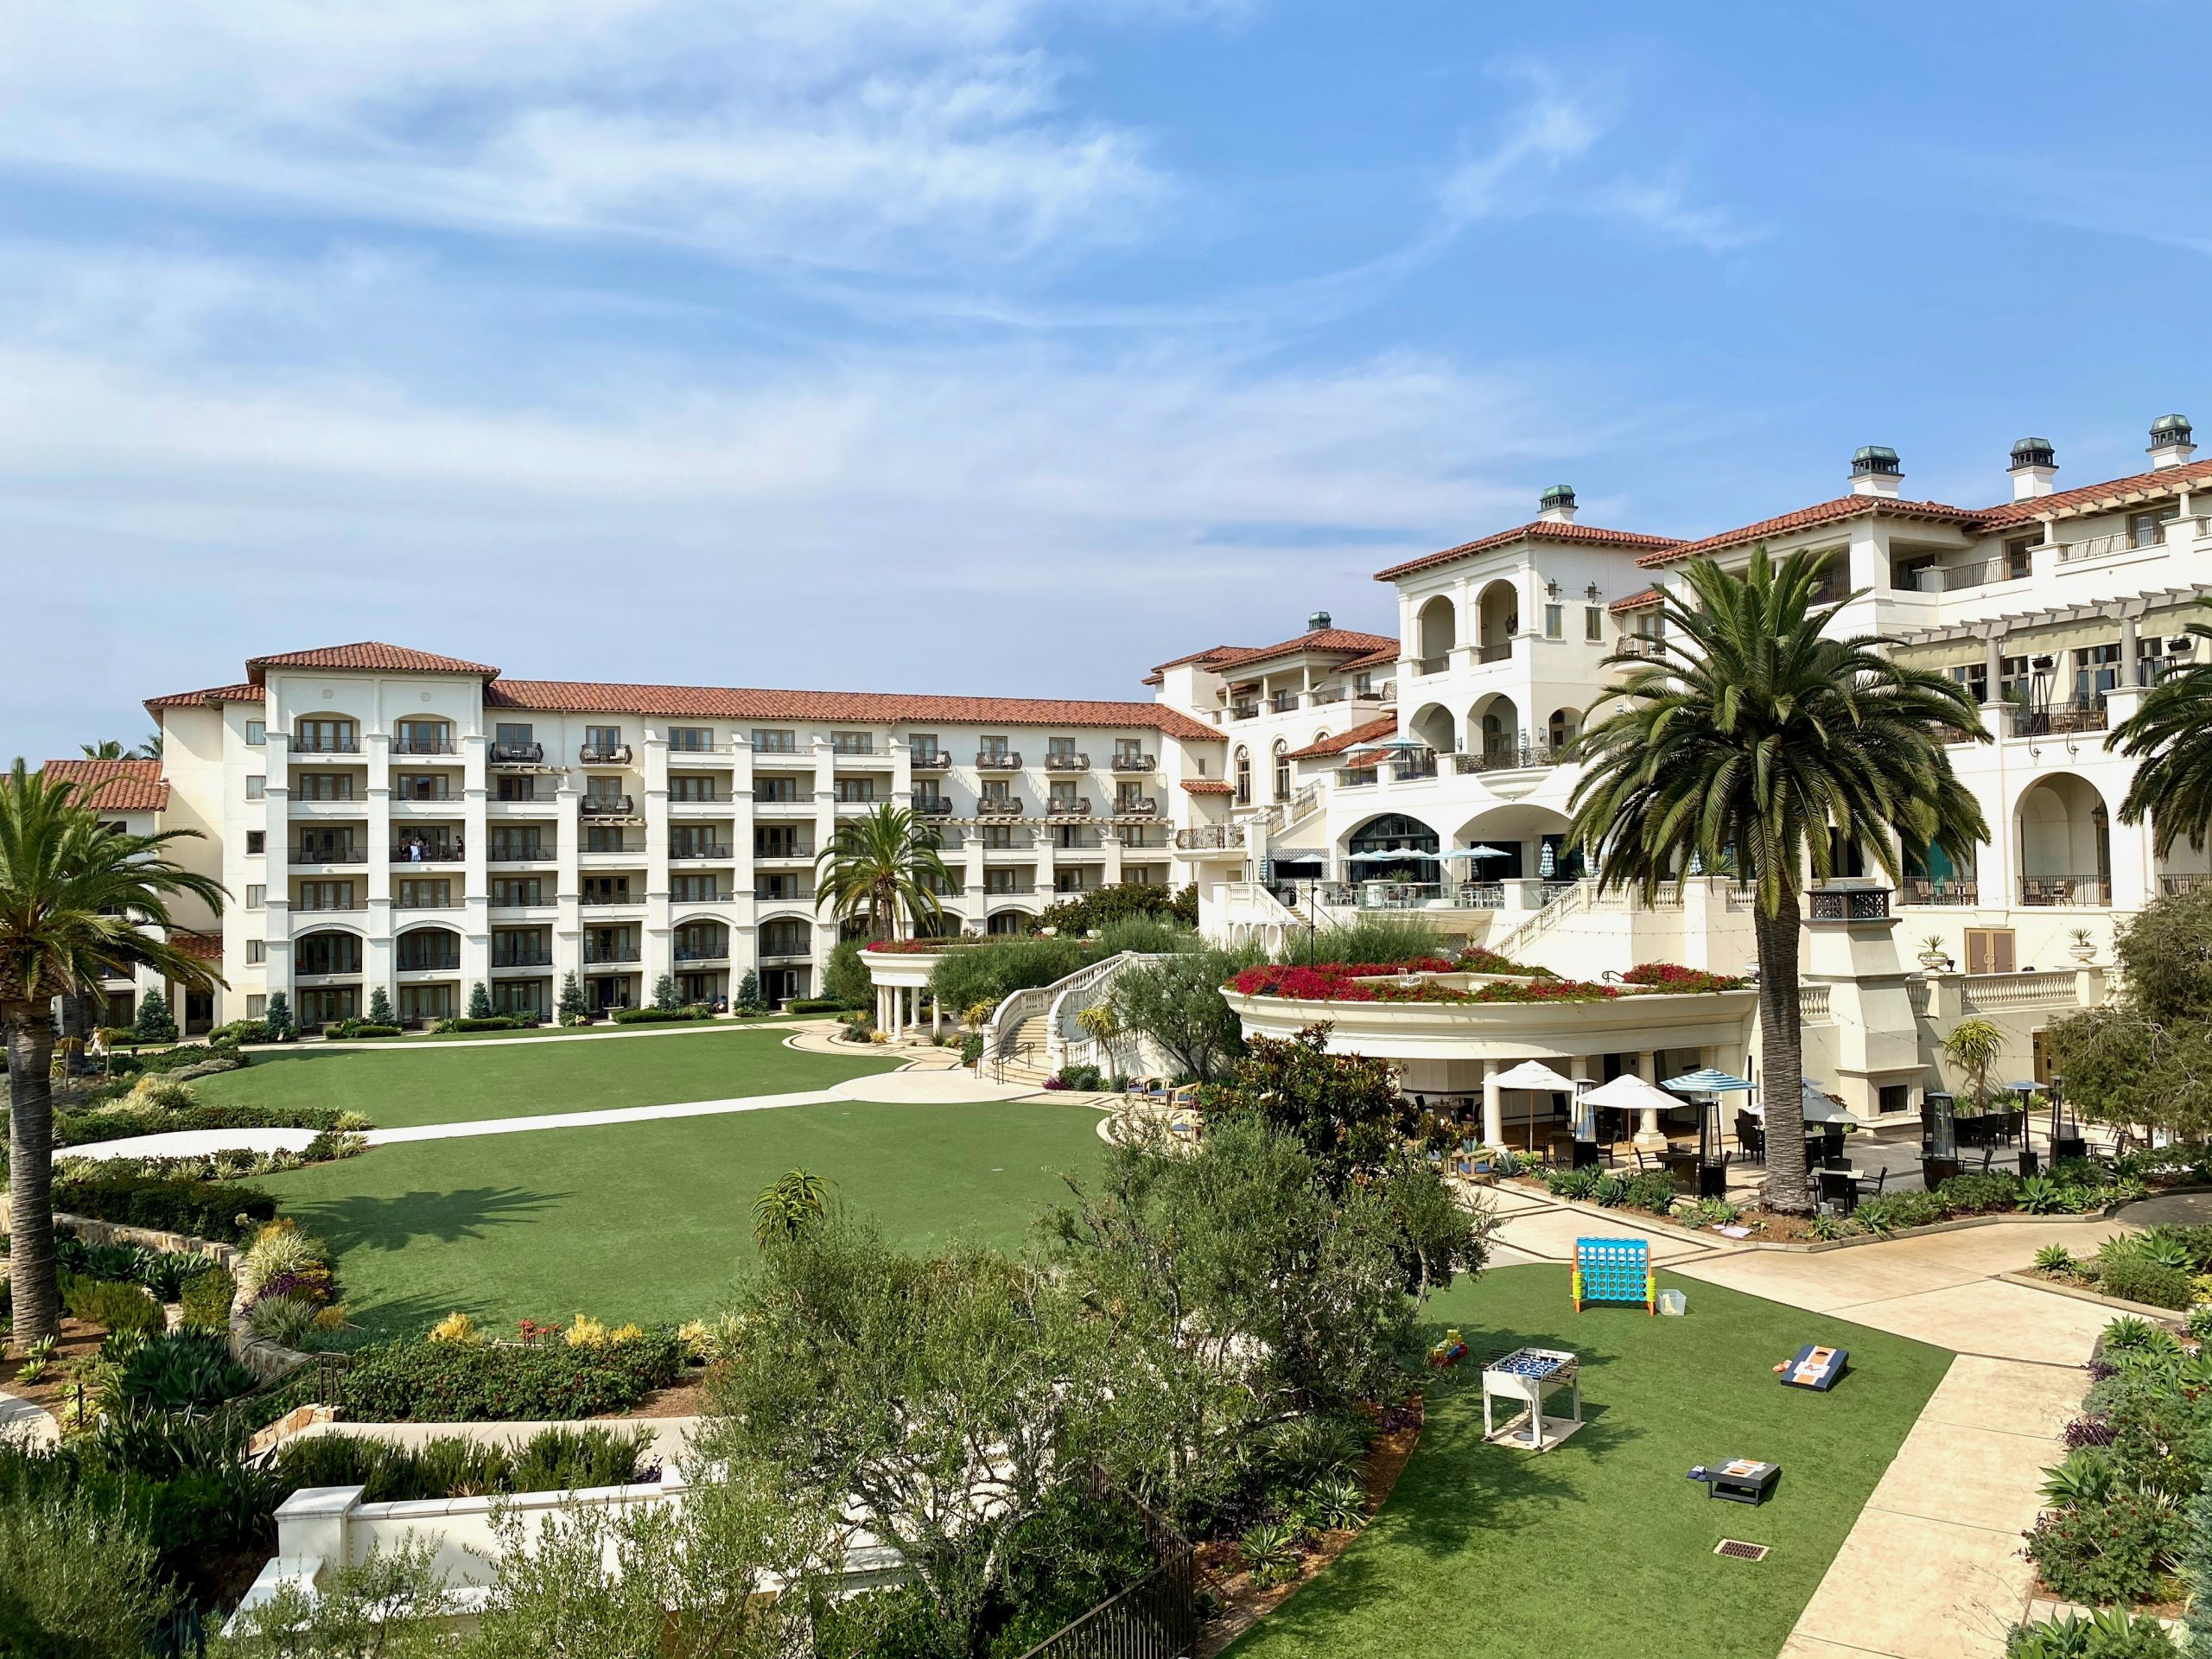 The Monarch Beach Resort buildings, terraces and lawns in Dana Point, CA